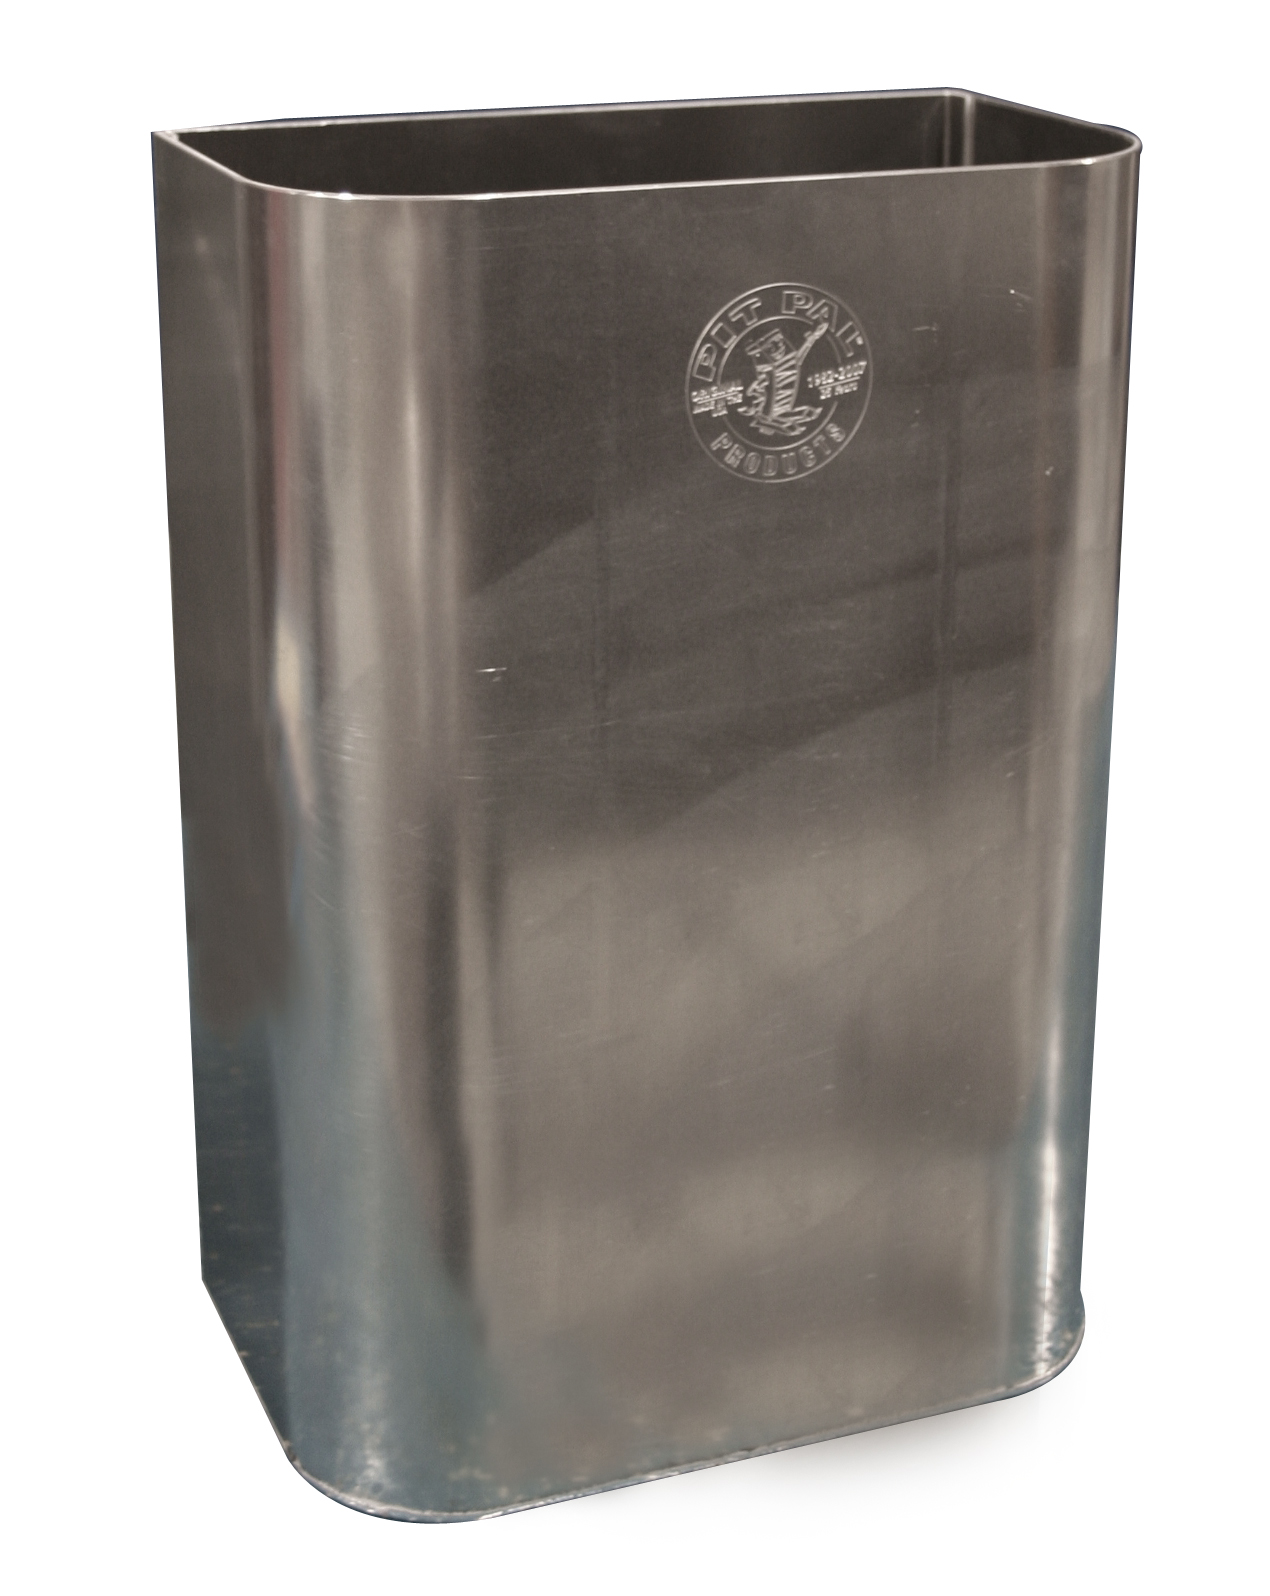 Aluminium Garbage Cans : Pit pal aluminum trash can free shipping